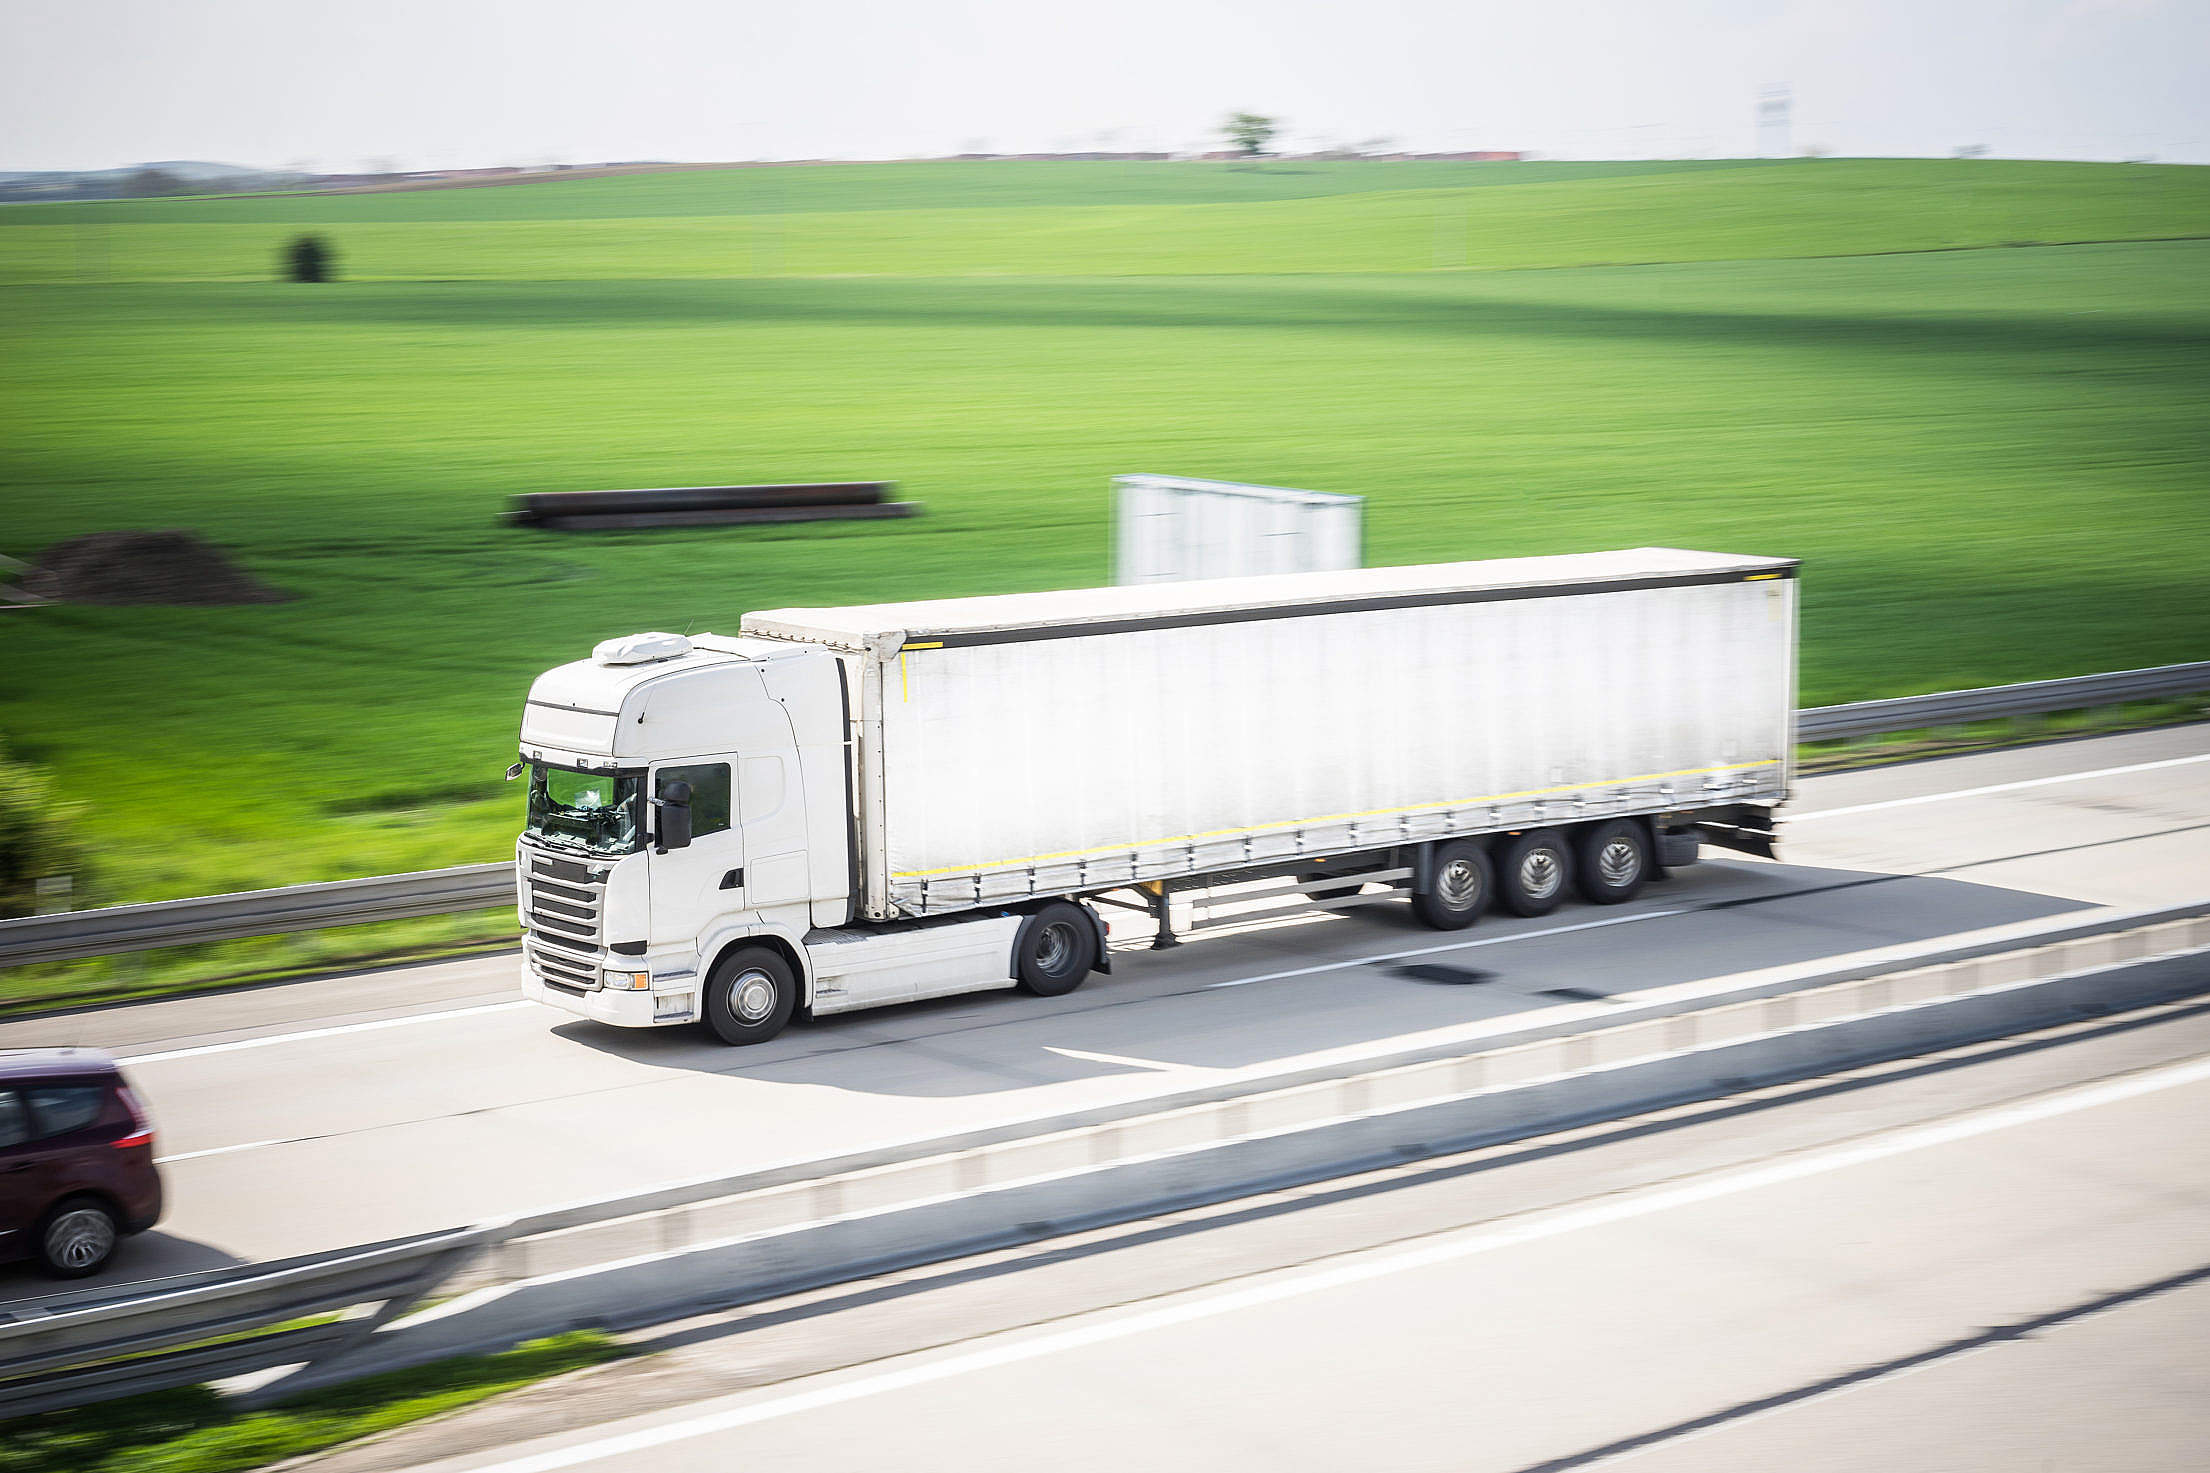 White TIR Truck in Motion Driving on Highway Free Stock Photo